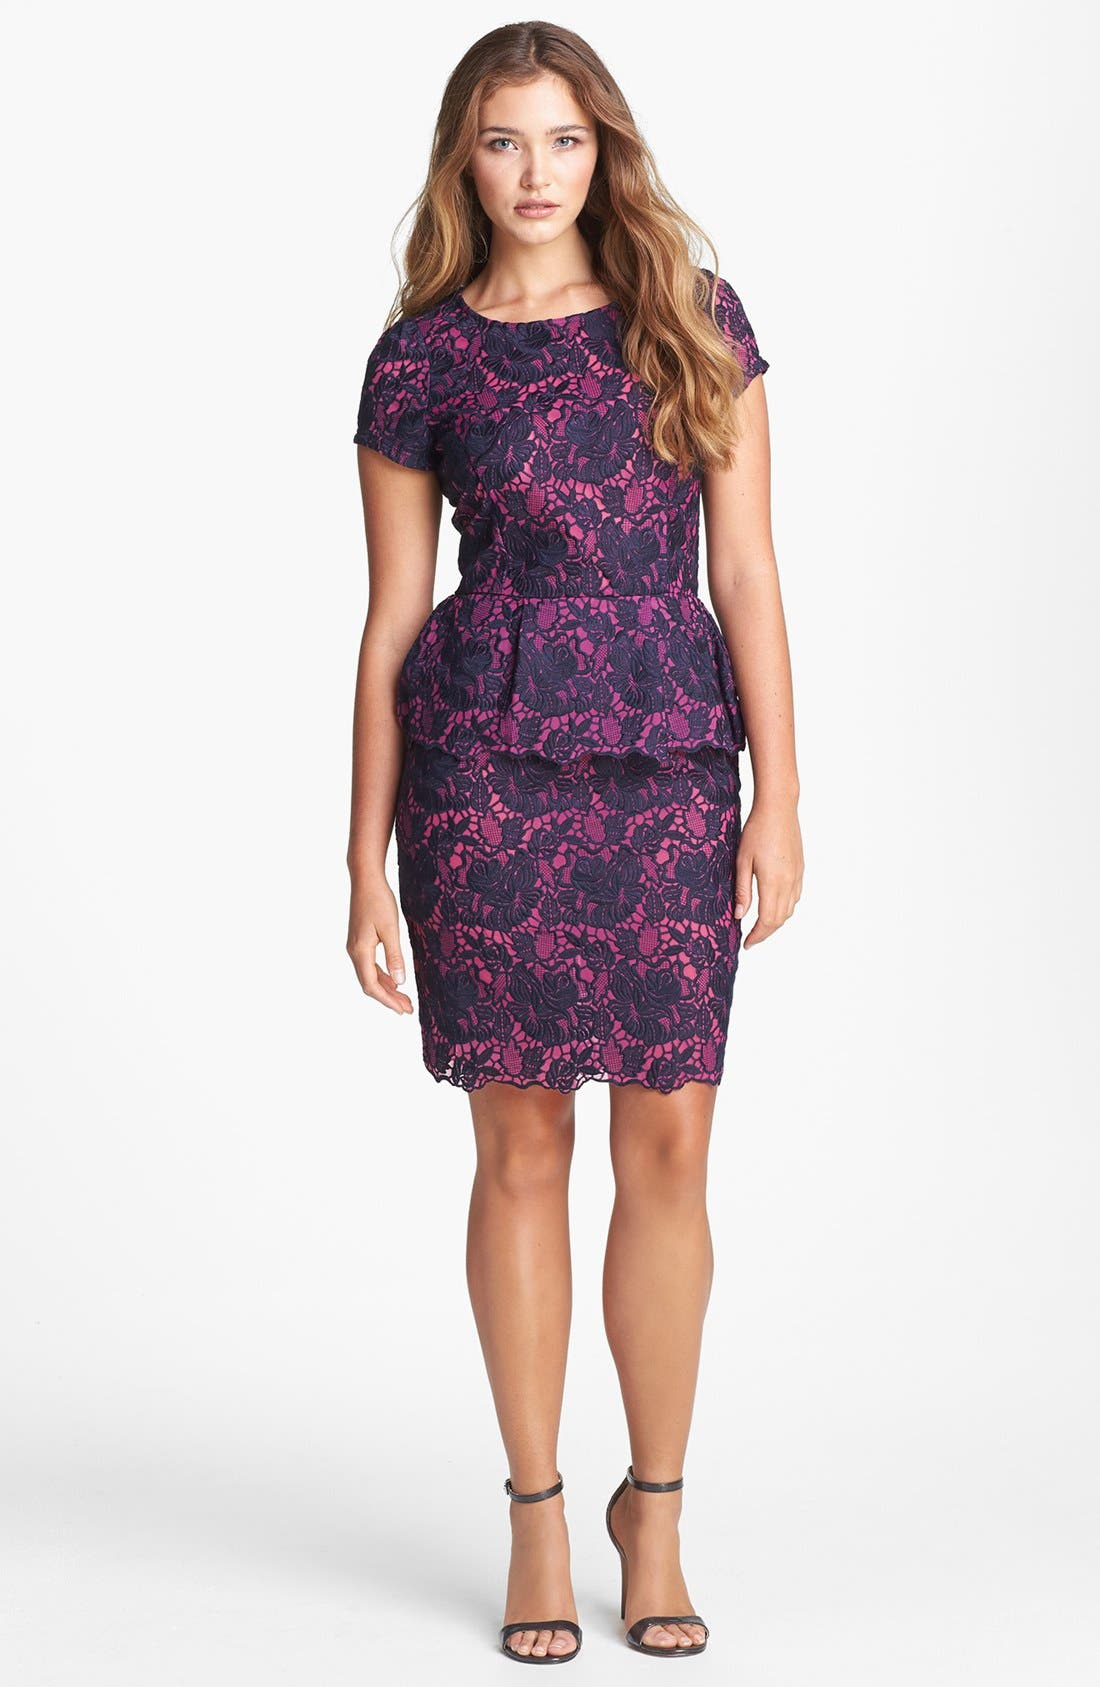 Main Image - Felicity & Coco Lace Peplum Sheath Dress (Regular & Petite) (Nordstrom Exclusive)